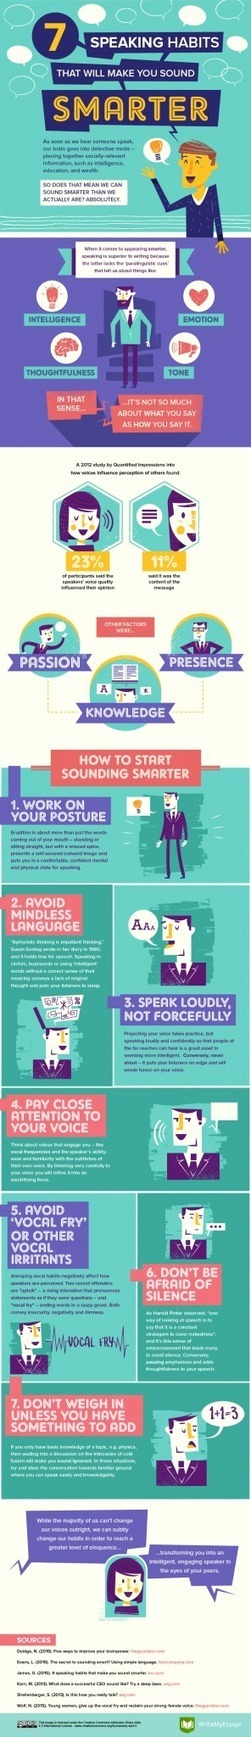 7 Speaking Habits That Will Make You Sound Smarter Infographic   Daring Ed Tech   Scoop.it